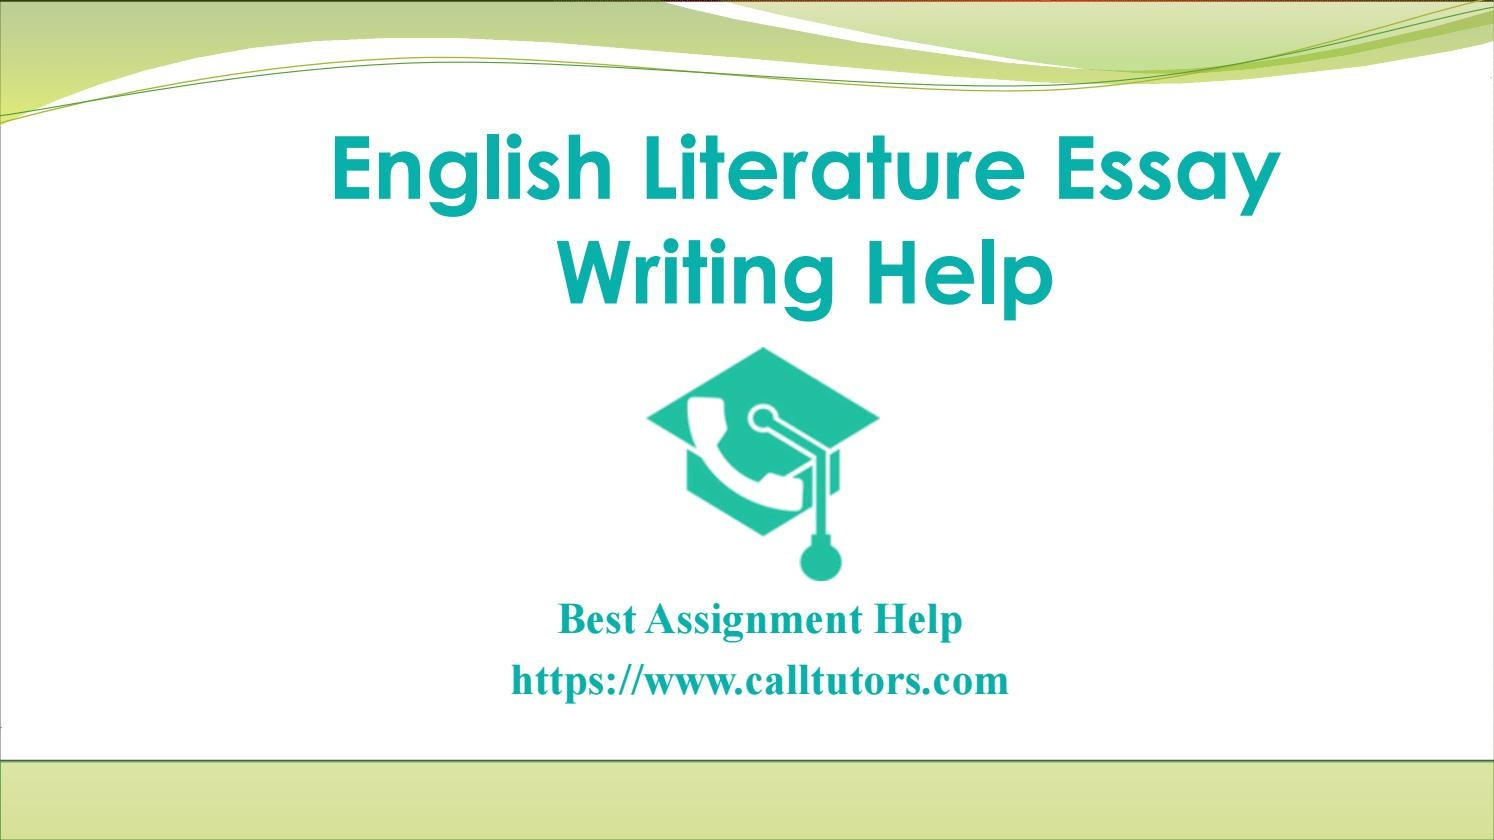 College Essay Paper Format English Literature Essay Writing Help By Royjason Issuu Page  English  Literature Essay Writing He Position Paper Essay also English Literature Essay Questions As English Literature Essay Help Business Customer Thank You  Reflection Paper Essay